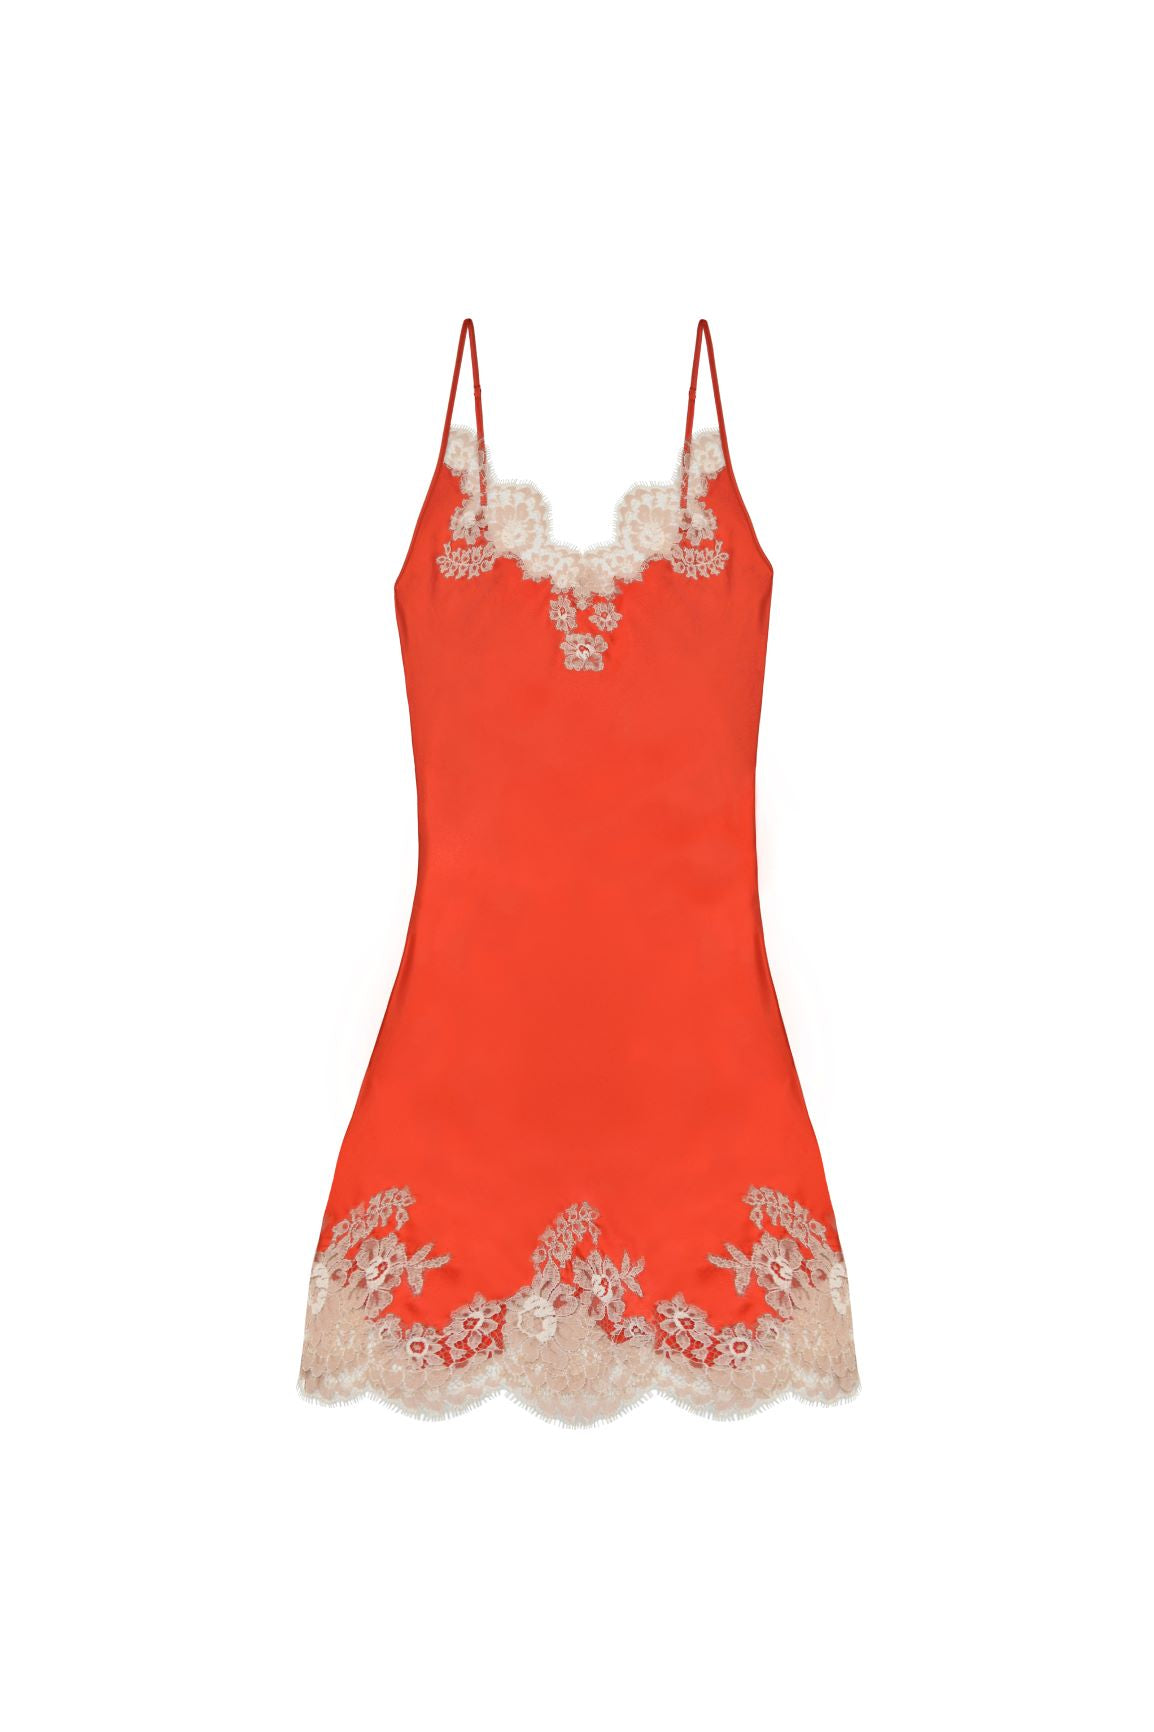 Manhattan Morning Mini Chemise in Orange/Nude - I.D. Sarrieri